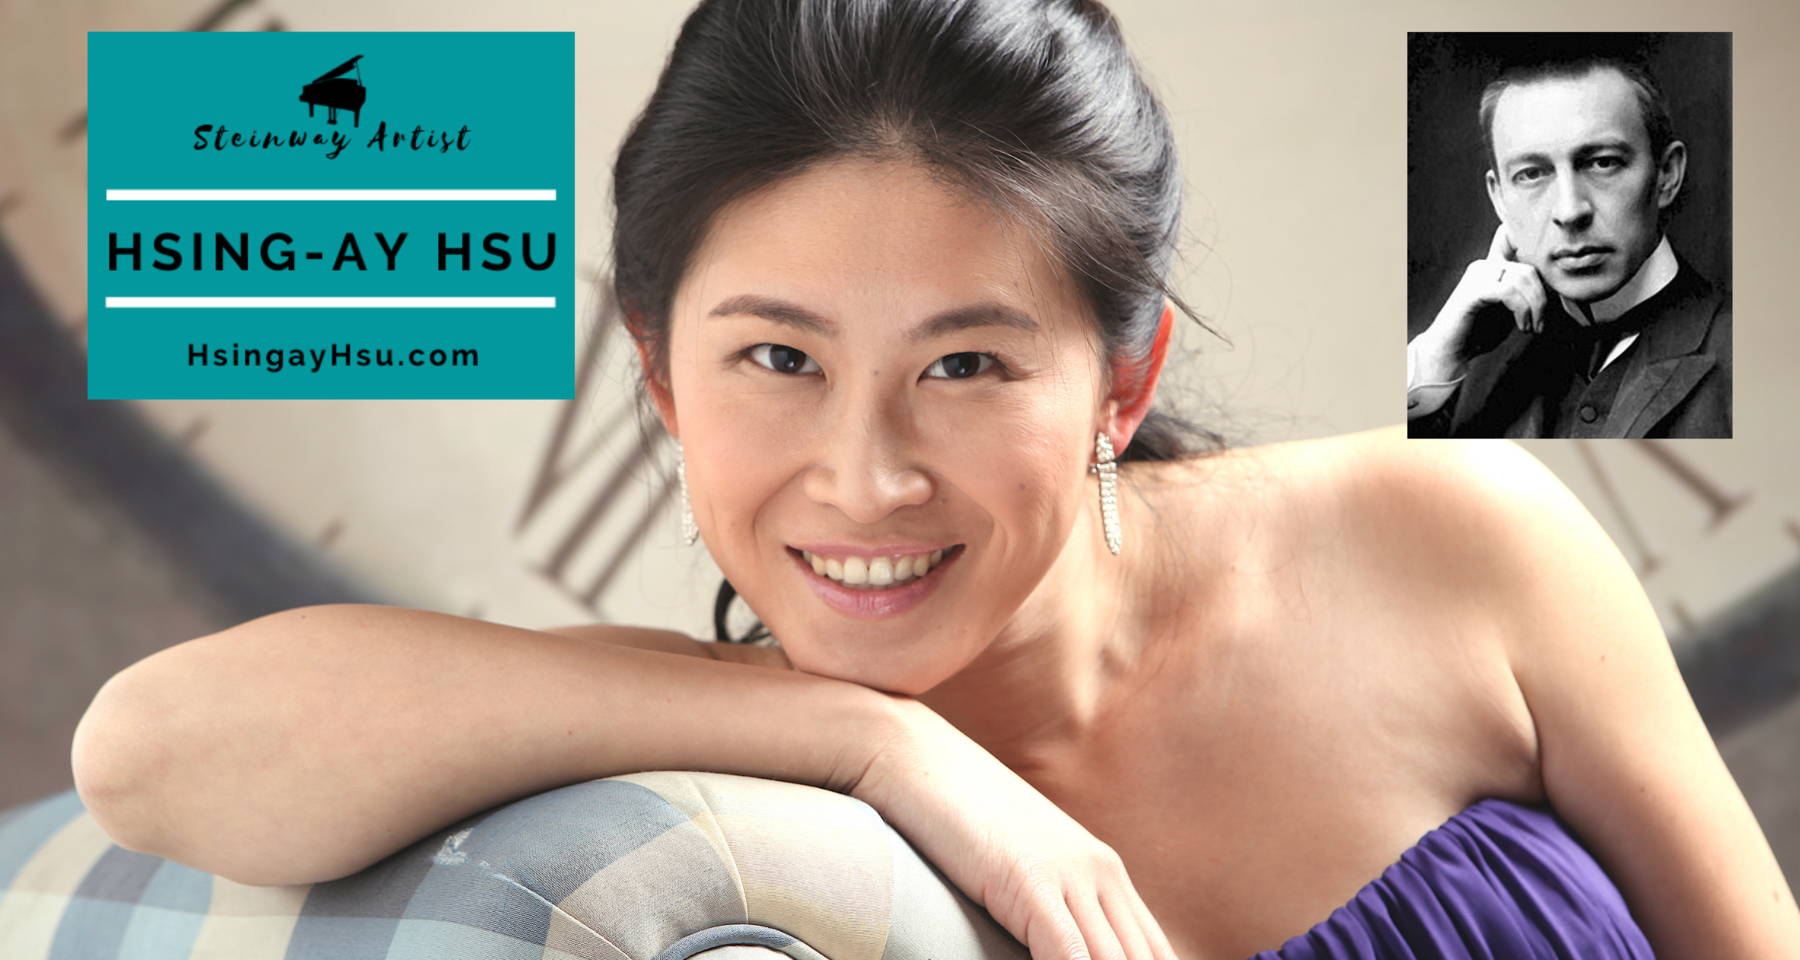 """Rachmaninoff's Variations on a Theme by Chopin: """"Elegance Meets Passion"""" with Hsing-ay Hsu"""